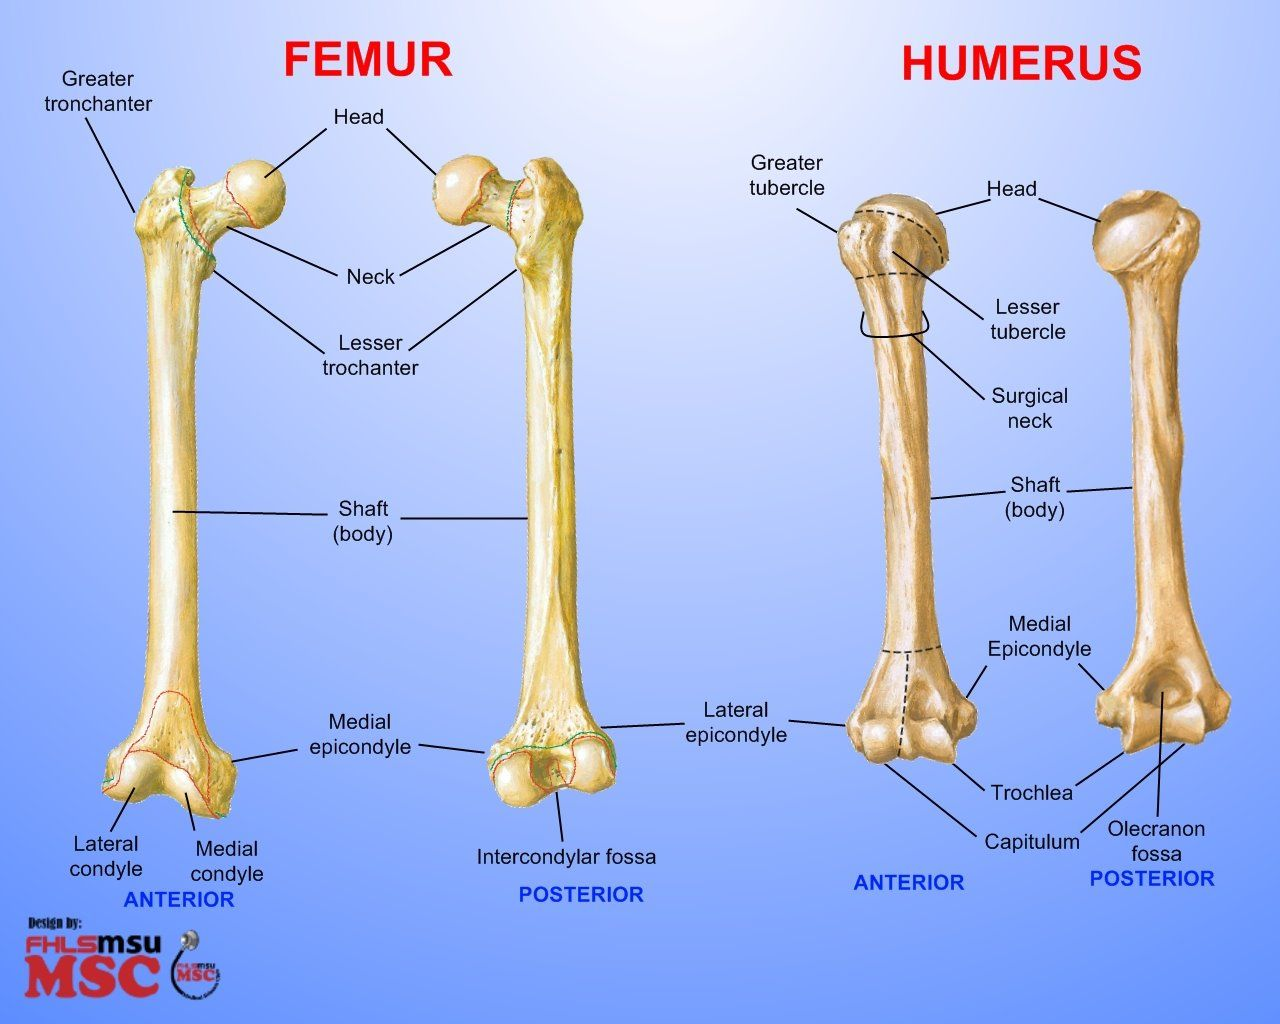 femur bone labeled differences between femur humerus elements [ 1280 x 1024 Pixel ]